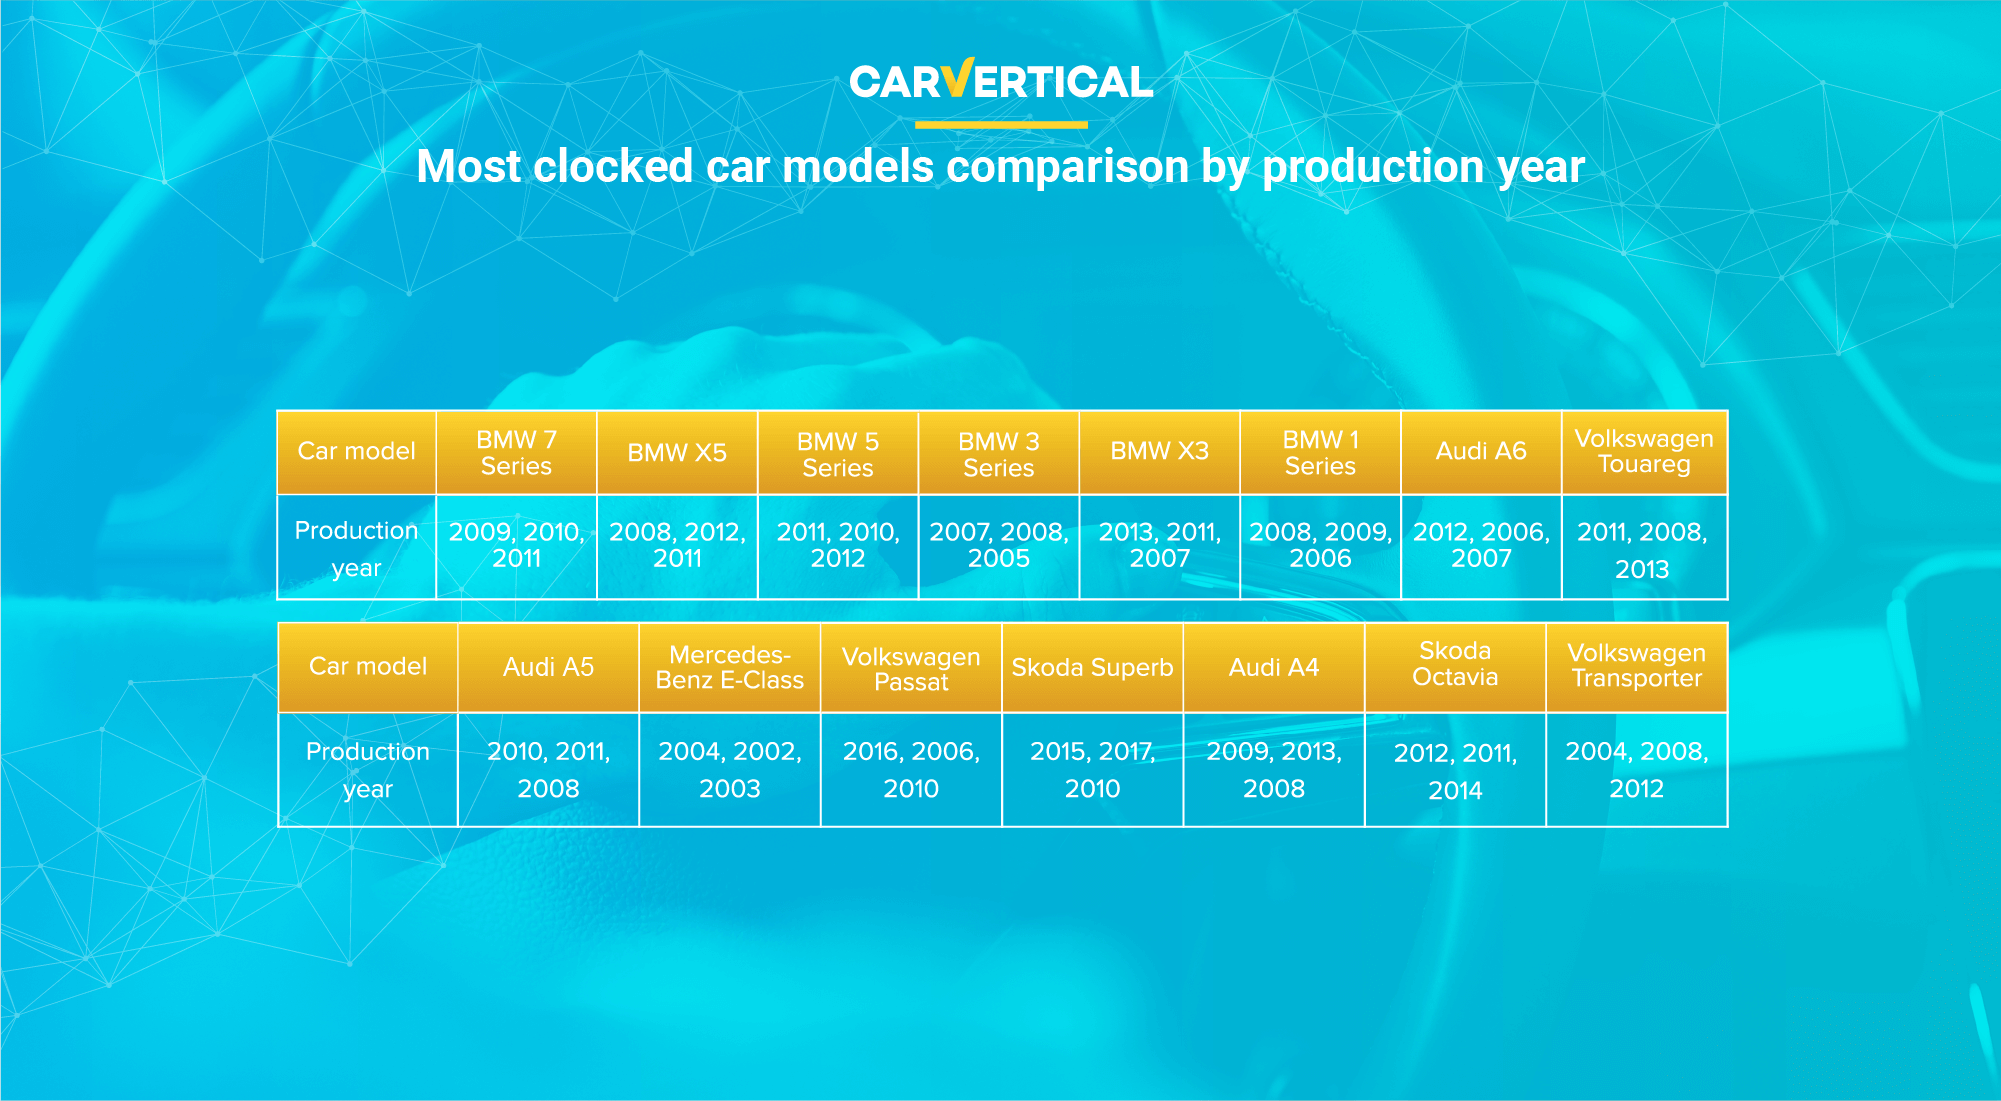 Most clocked car model comparison by production year